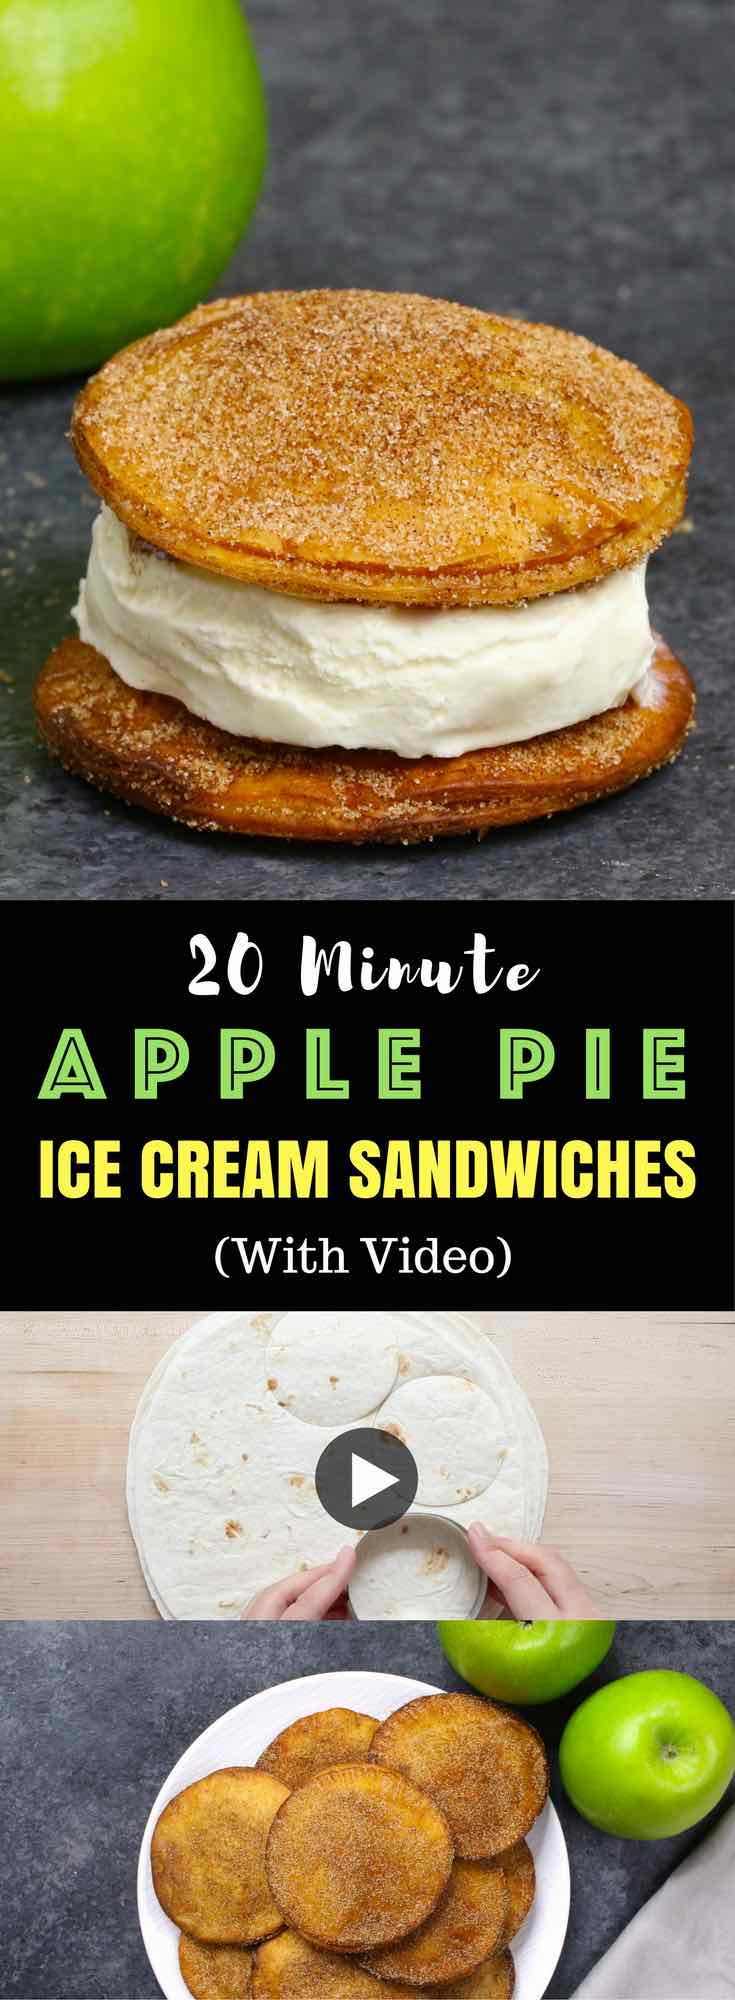 Super easy Apple Pie Ice Cream Sandwiches - Delicious cinnamon sugary apple pie with ice cream in between. A super easy recipe using flour tortillas and comes together in no time! All you need is a few simple ingredients: Flour Tortillas, butter, cinnamon, sugar, apples, lemon, egg and ice cream. Quick and easy recipe. Great for party dessert and holiday brunches. Video recipe. | Tipbuzz.com